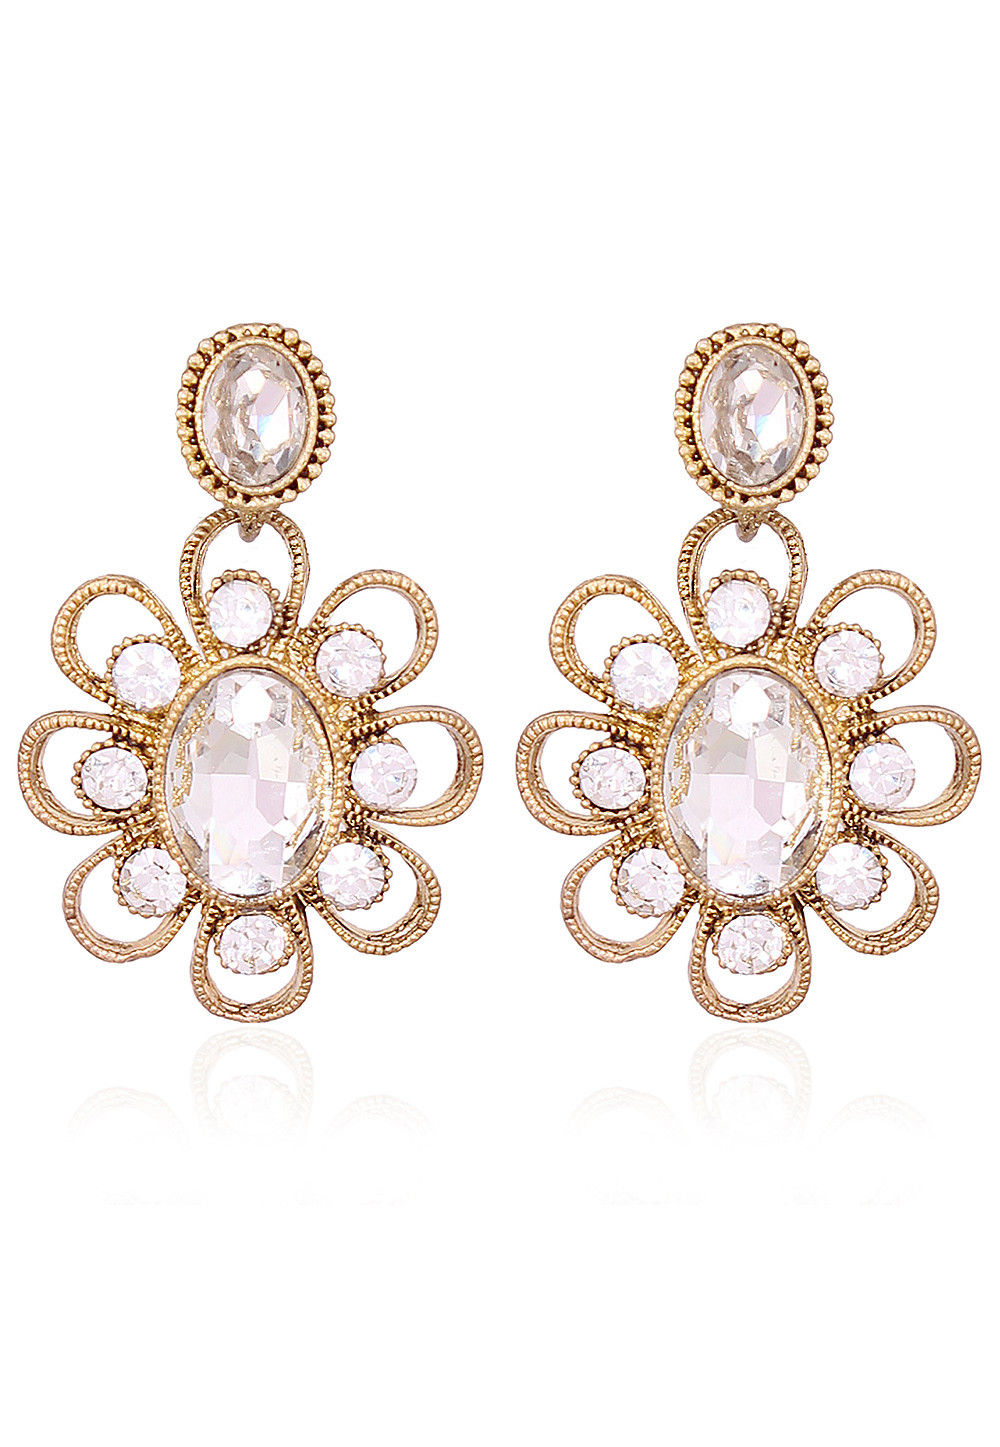 Stone Studded Earring in Golden and White